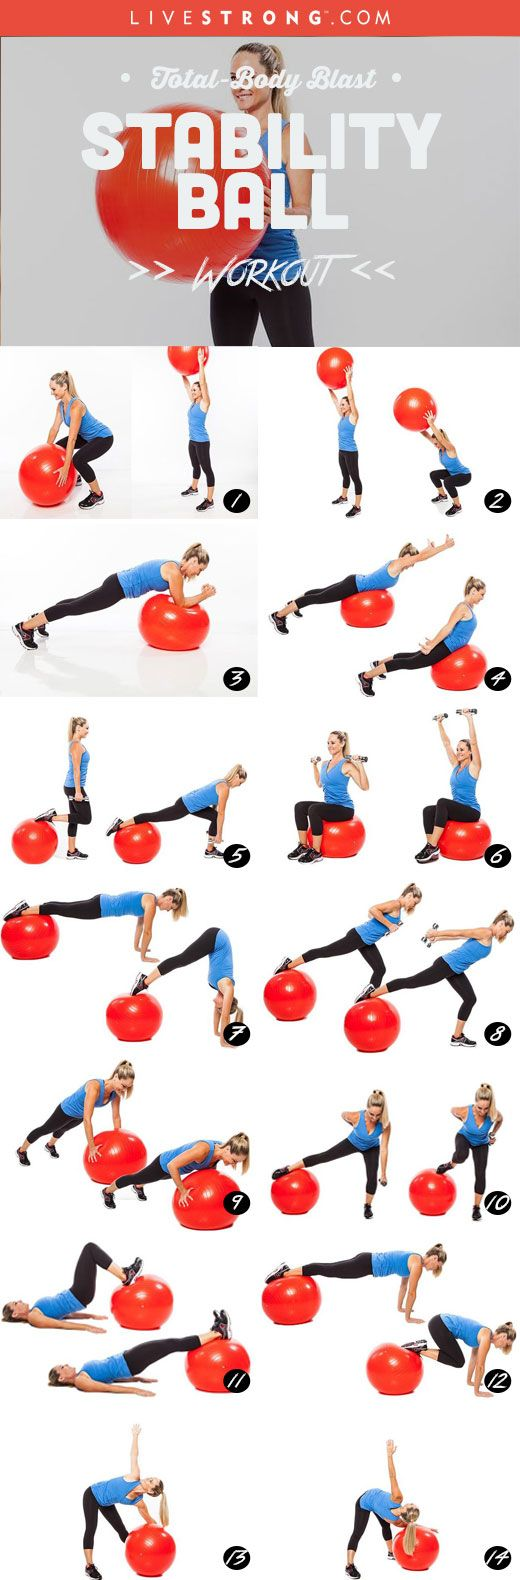 Total-Body Blast Stability Ball Workout: http://www.livestrong.com/slideshow/1007856-total-body-ball-blast-workout/                                                                                                                                                                                 More